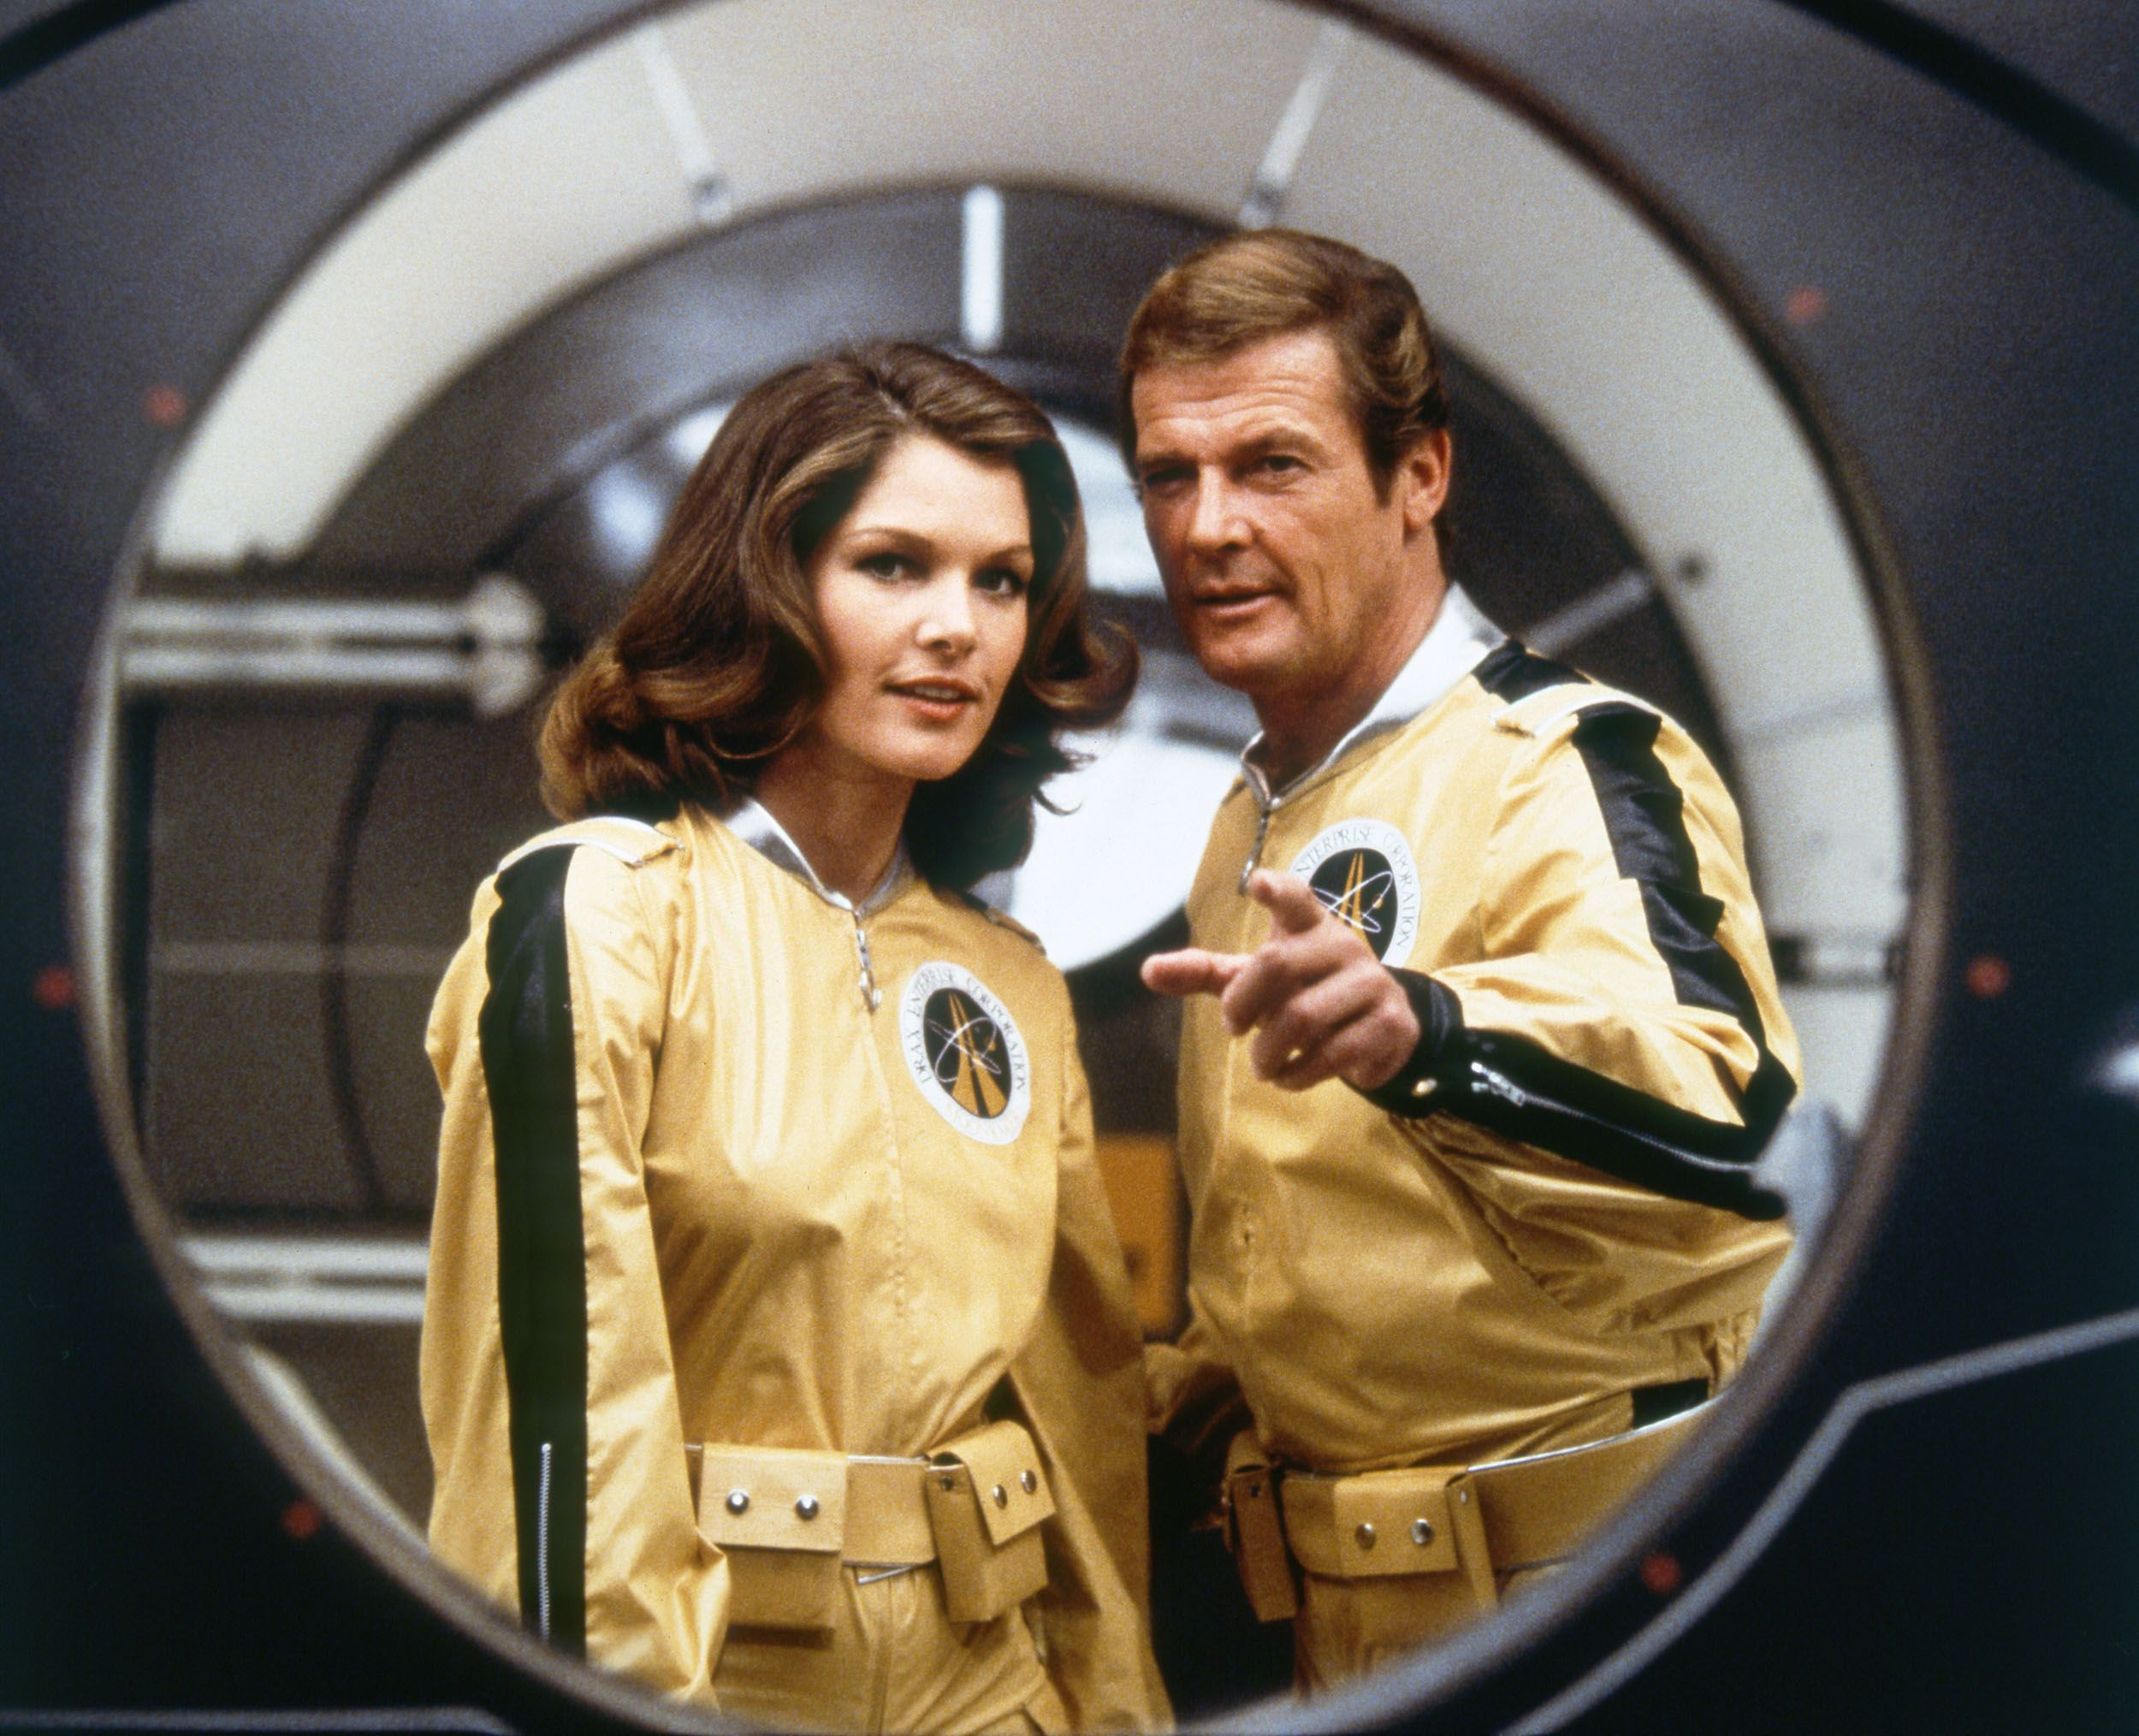 Roger Moore and actress Lois Chiles on the set of Moonraker.